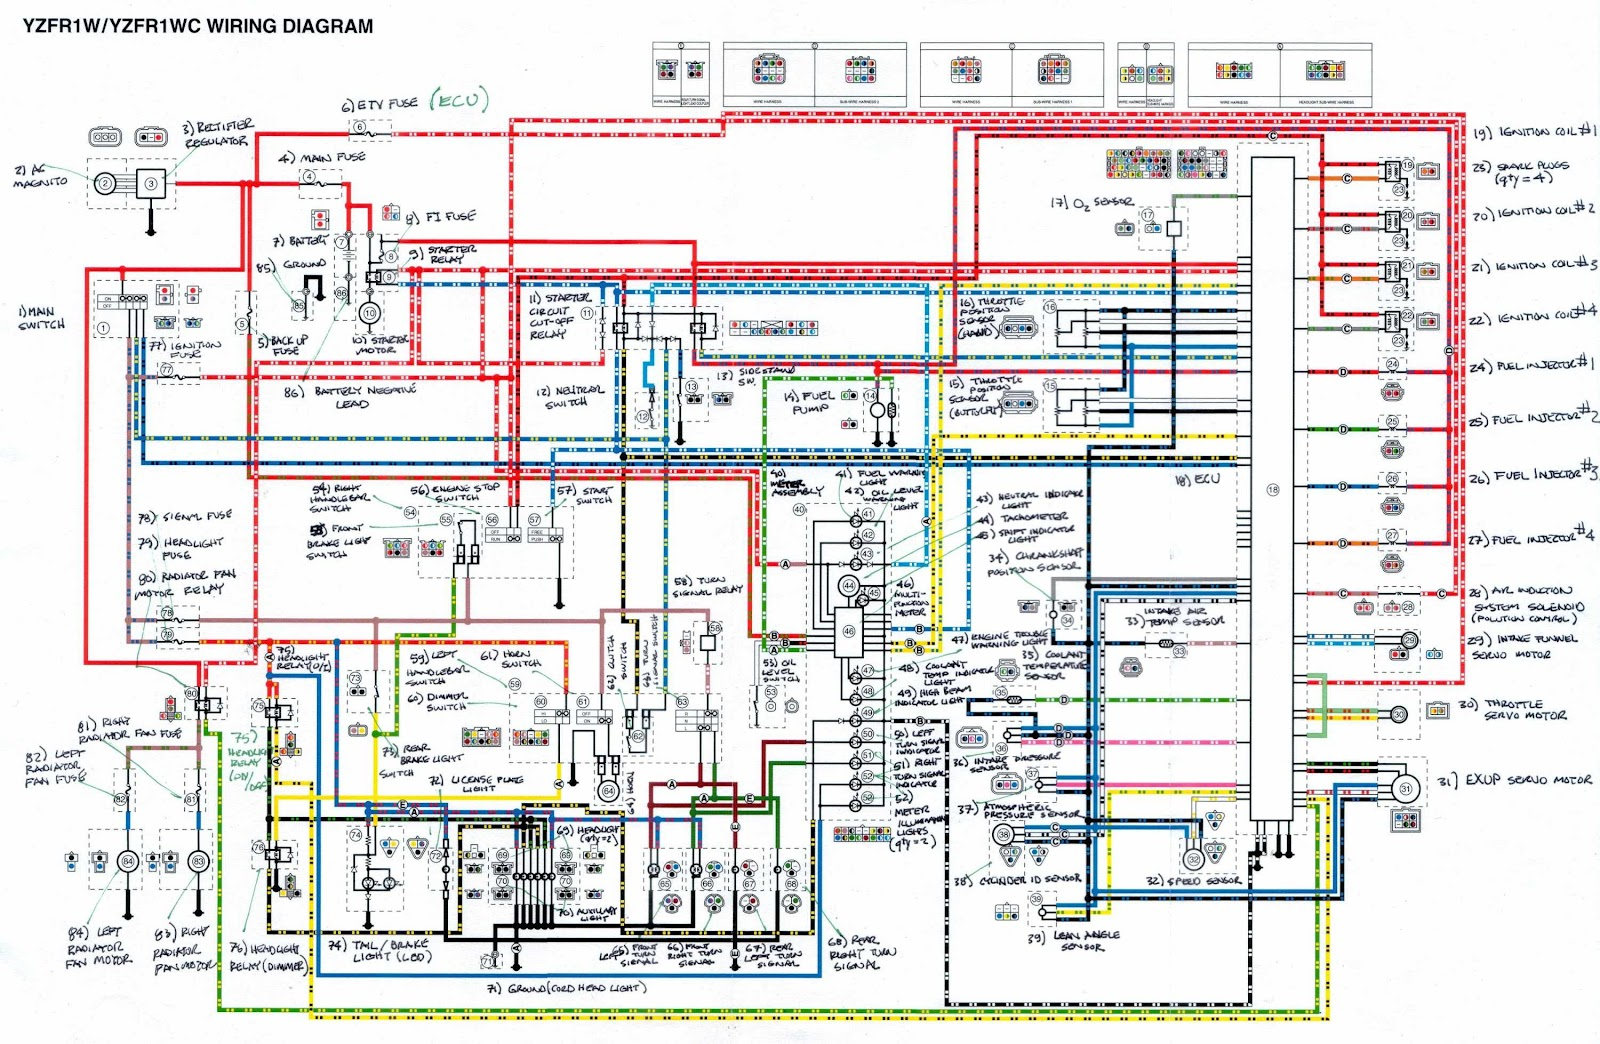 yamaha yzf r1 motorcycle wiring diagram all about wiring 1987 chevy truck  wiring diagram pdf 1987